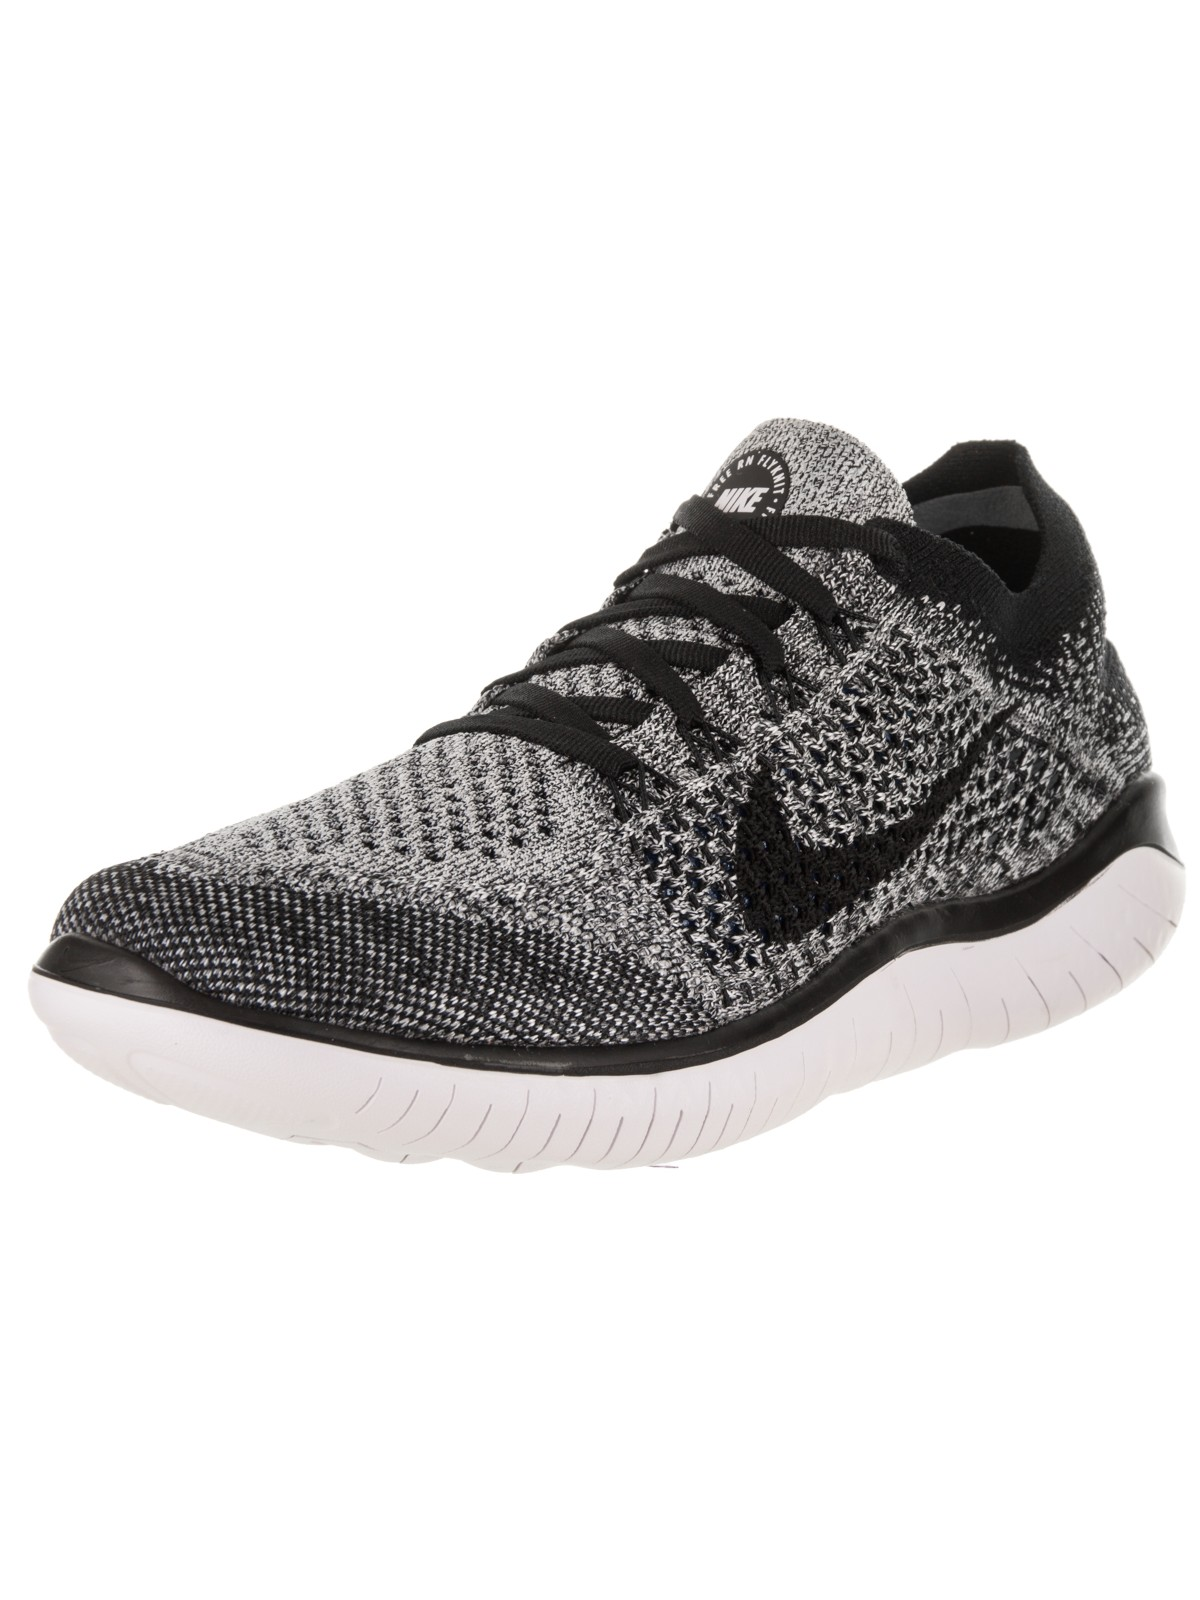 Sky Birds Animals Fashion Fly Knit Shoes Girl Casual Sports Sneakers